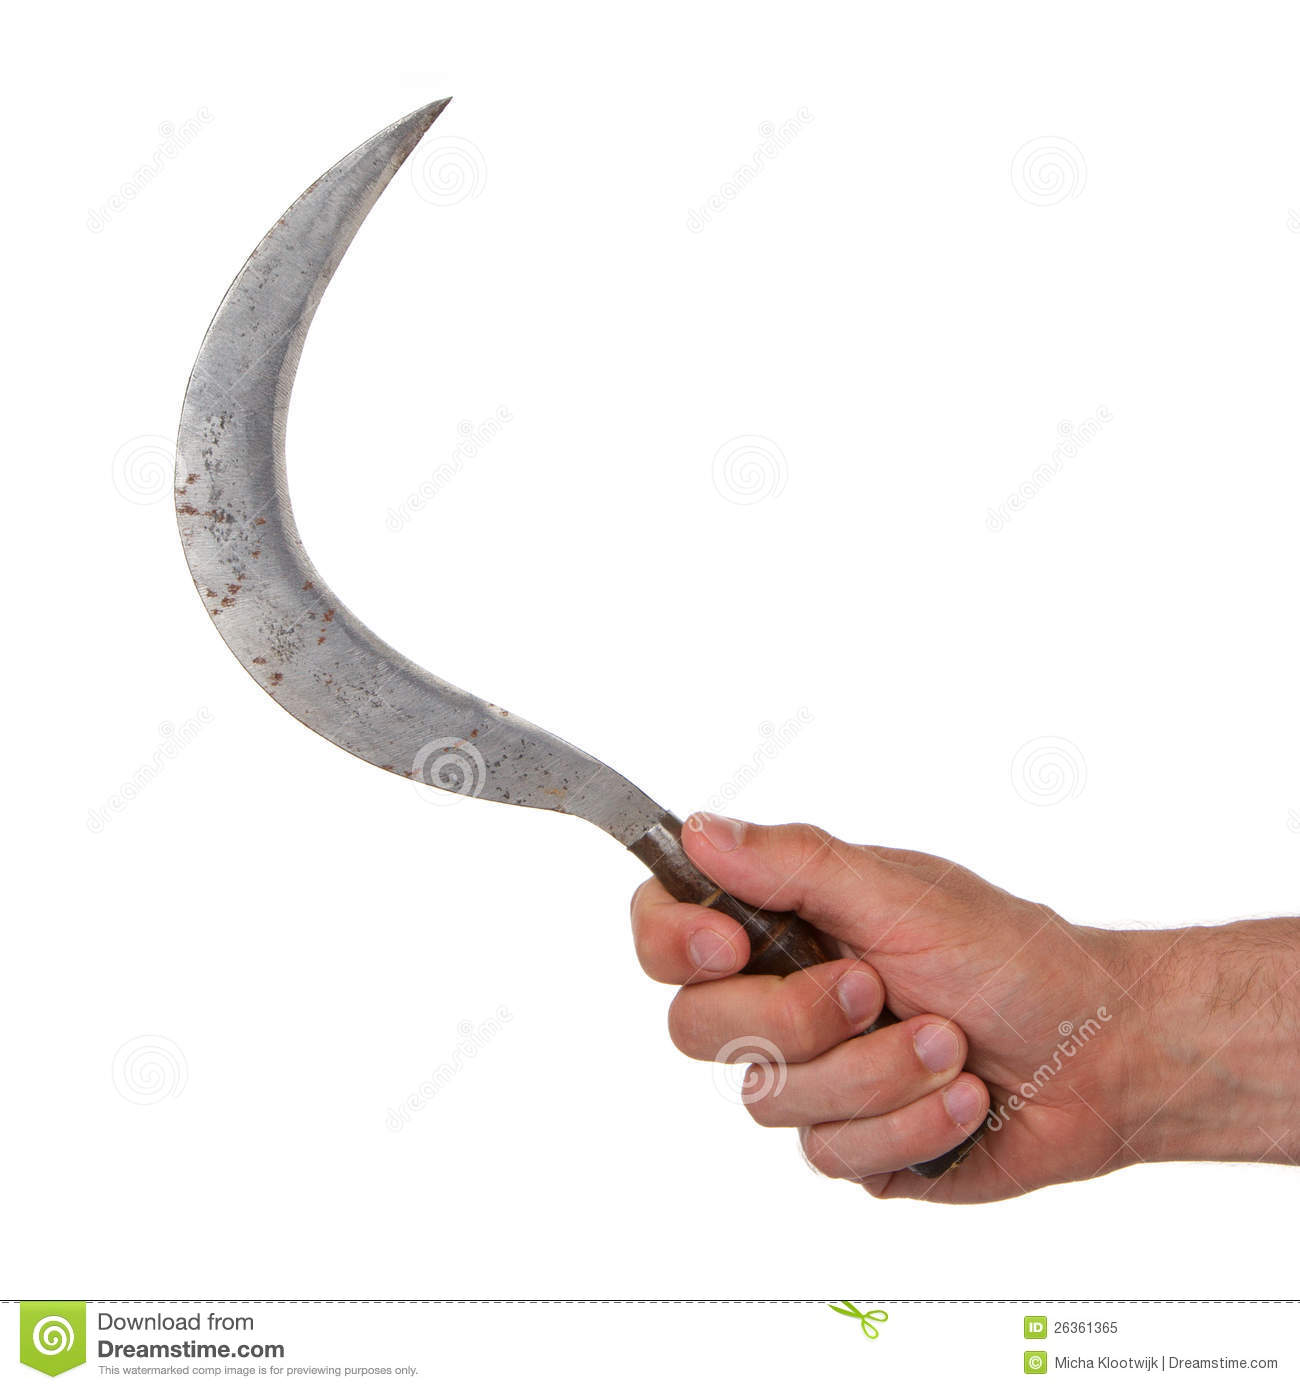 Man holding a rusted sickle